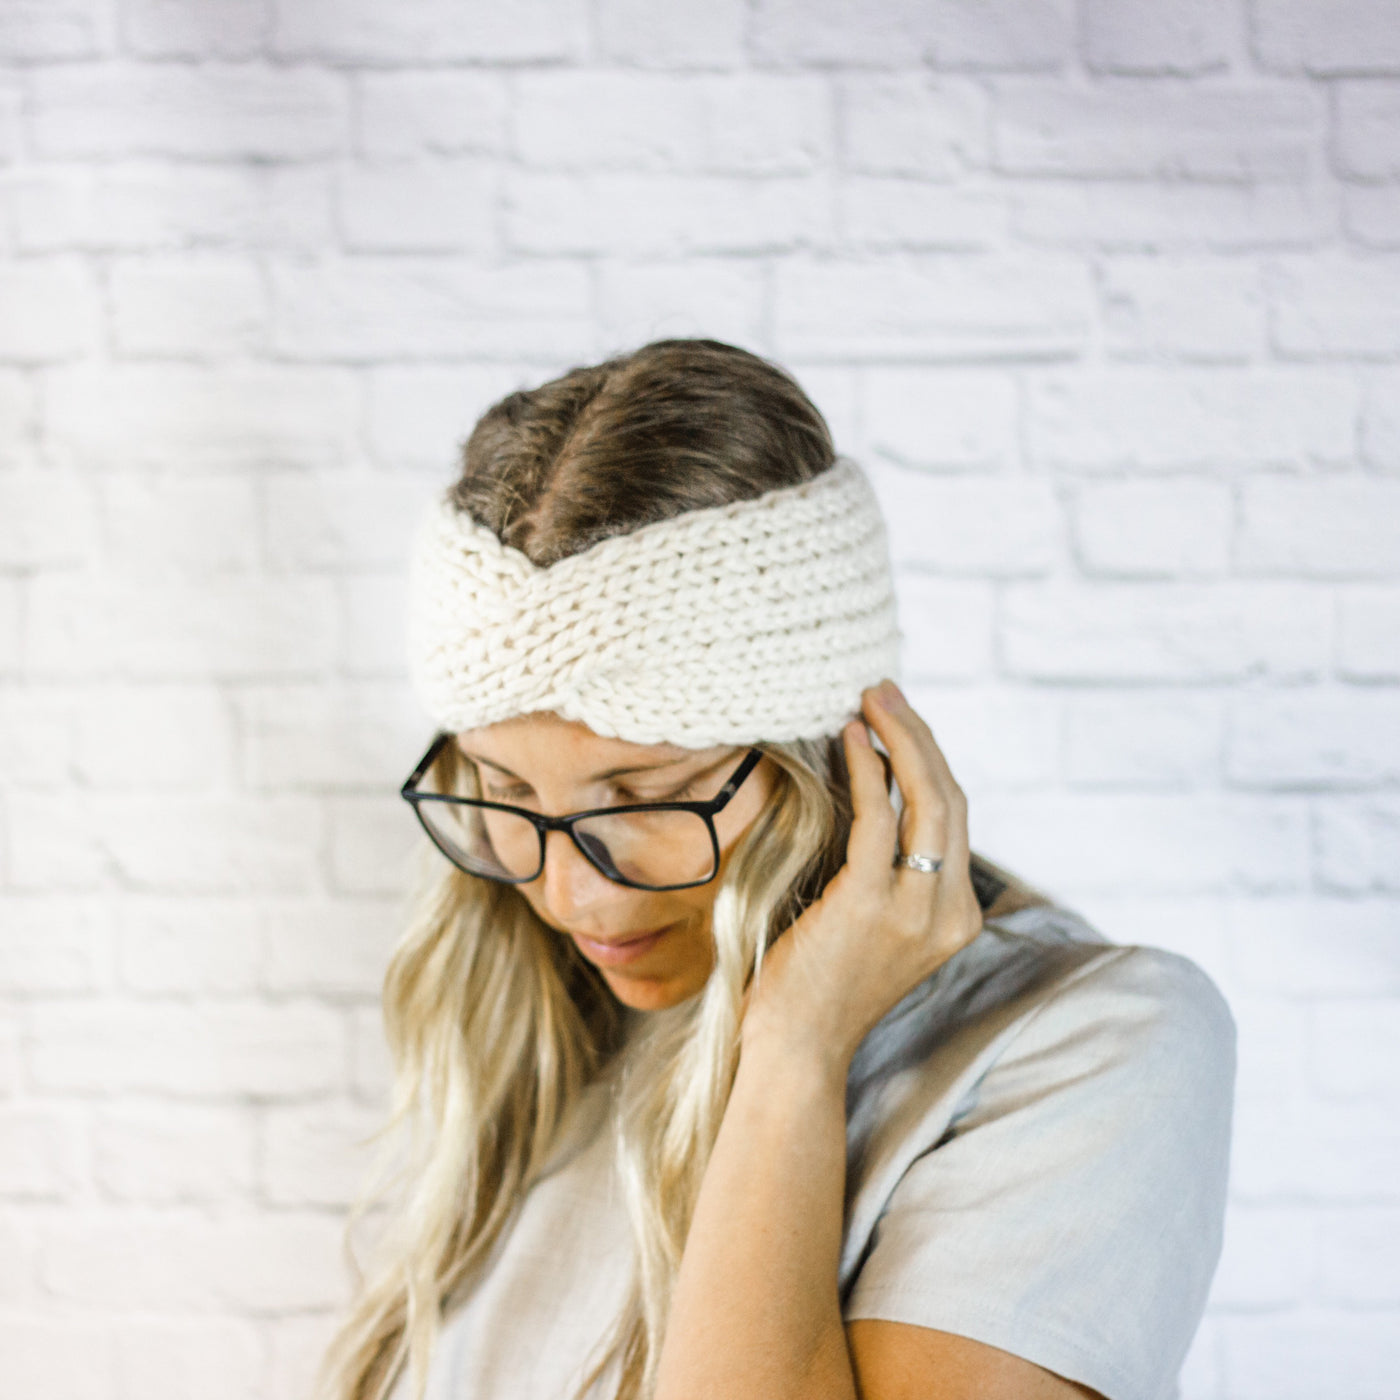 Wheatfield Knitwear Headbands Cream Chunky Knit Ear Warmer, Ladies Wide Twisted Turban Headband